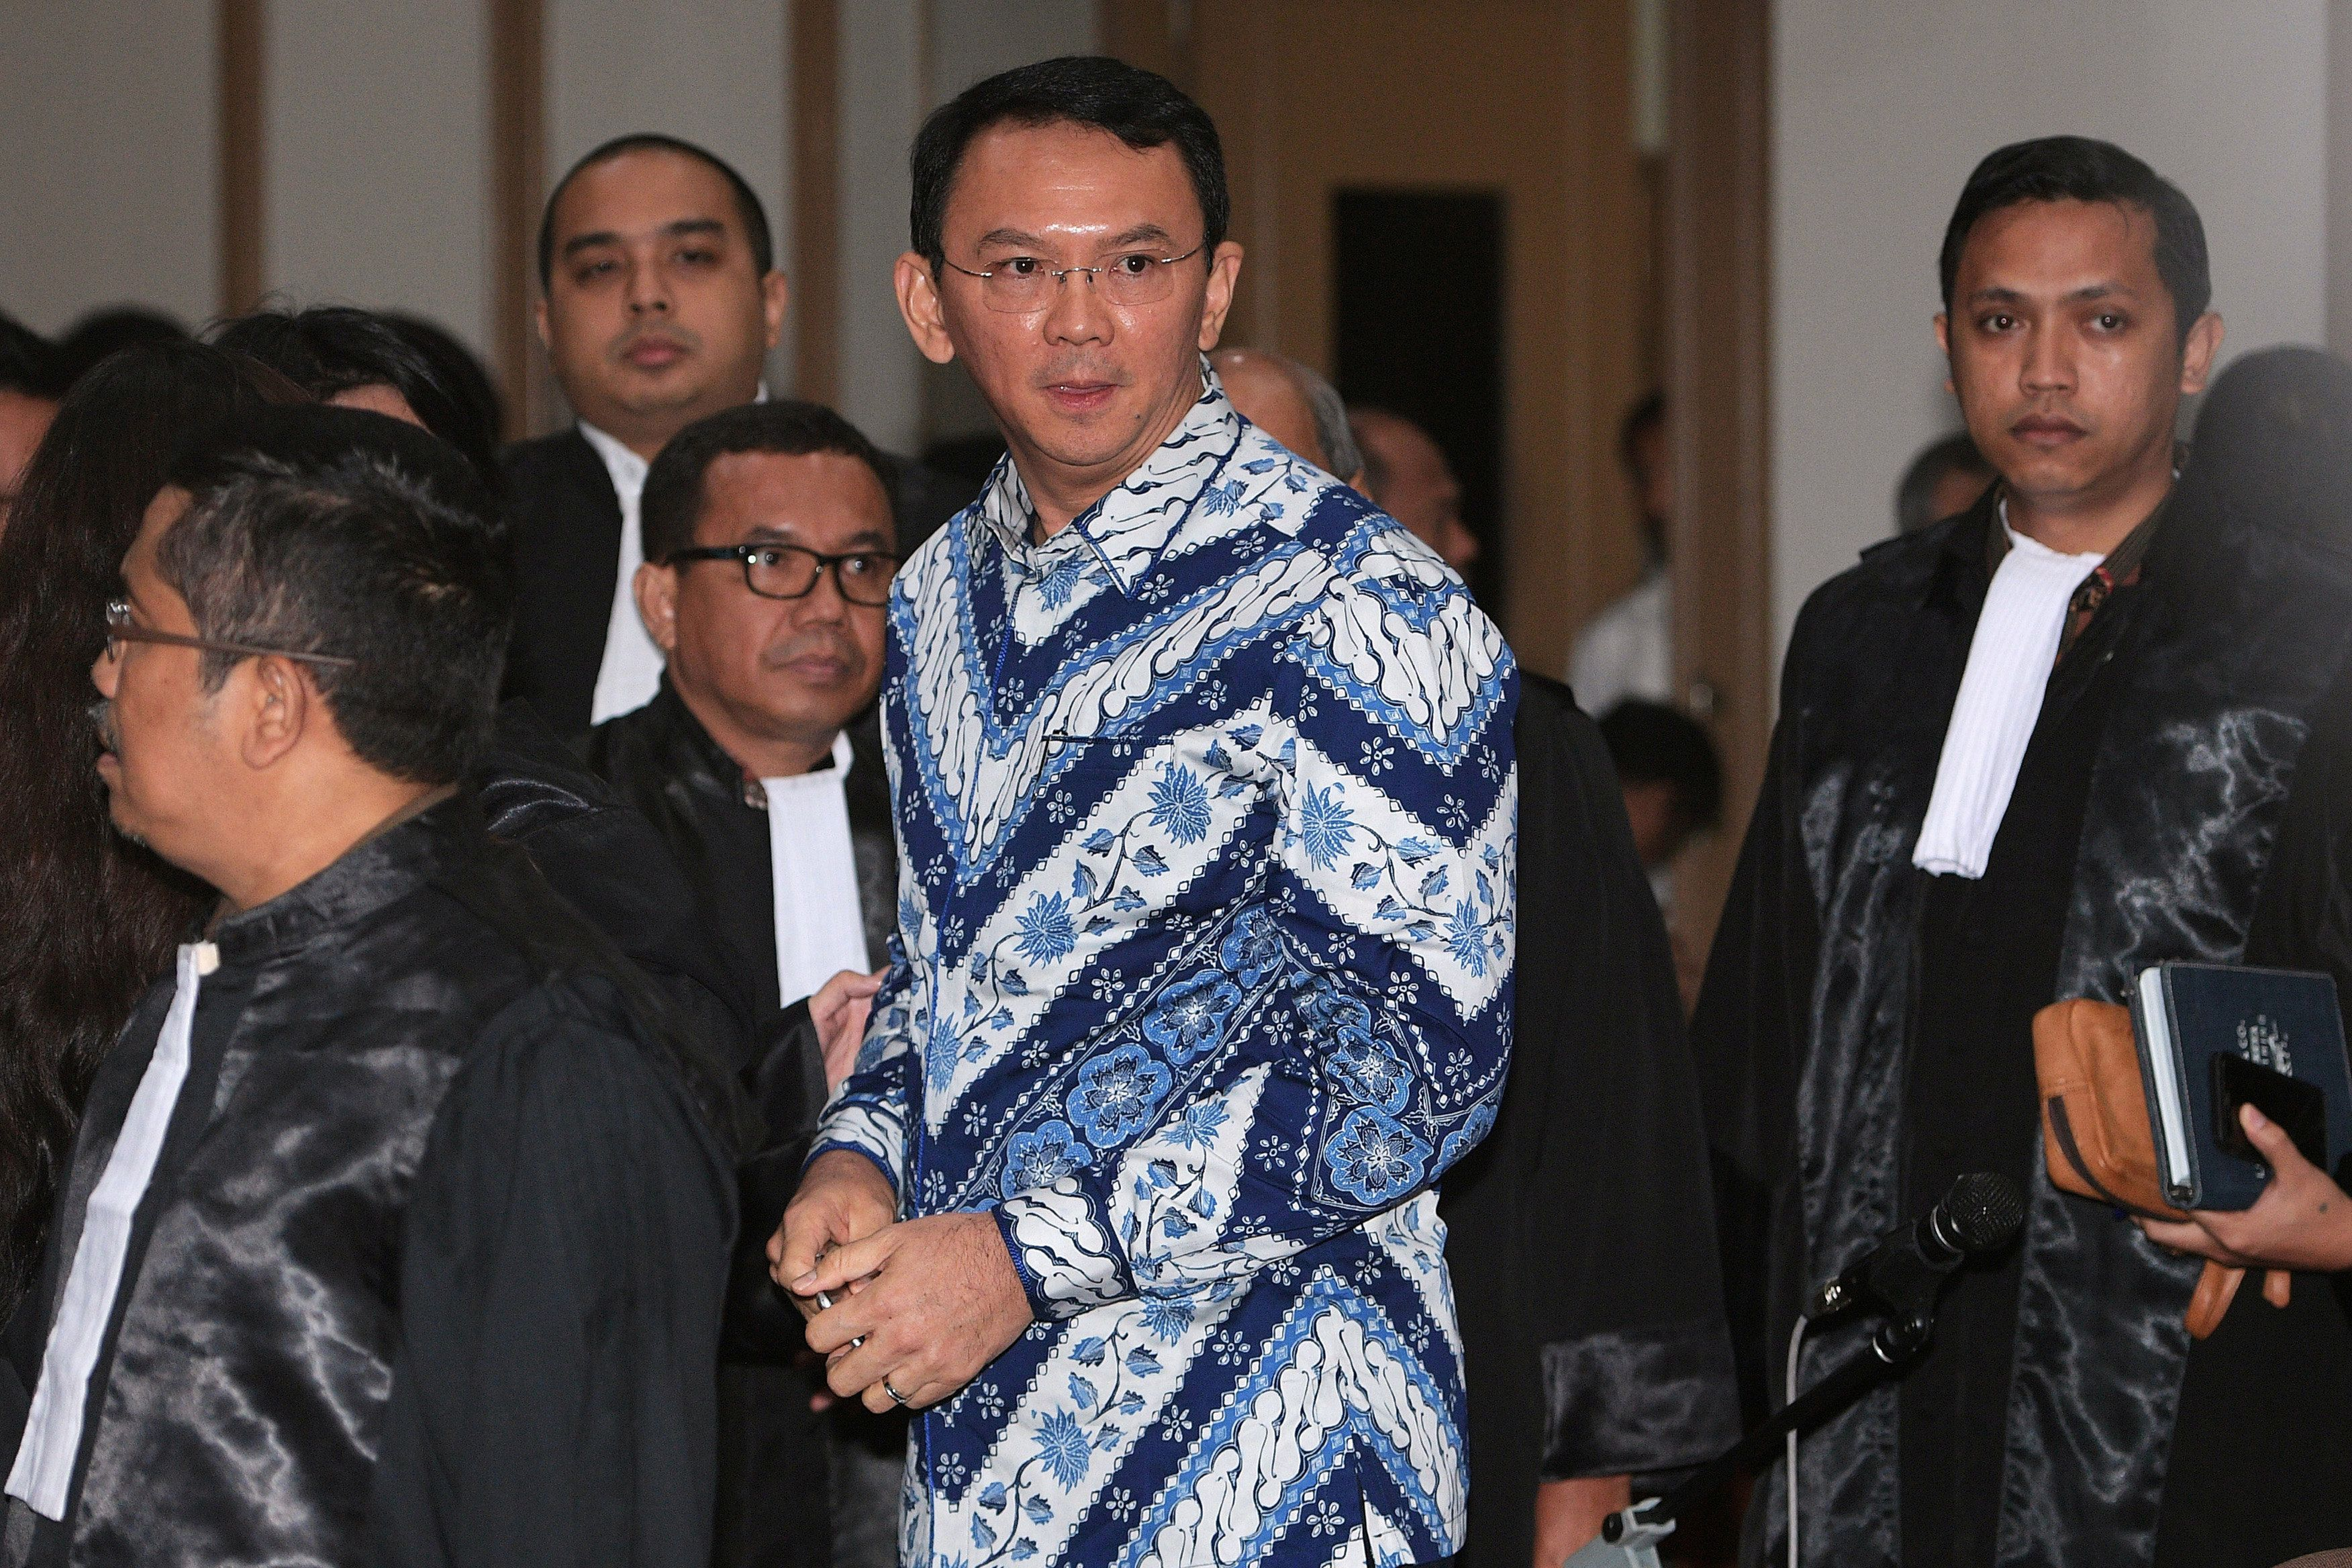 Jakarta Governor Basuki Tjahaja Purnama is seen inside a court during his trial for blasphemy in Jakarta, Indonesia May 9, 2017 in this photo taken by Antara Foto. Antara Foto/ Sigid Kurniawan/via REUTERS ATTENTION EDITORS - THIS IMAGE WAS PROVIDED BY A THIRD PARTY. FOR EDITORIAL USE ONLY. MANDATORY CREDIT. INDONESIA OUT. THIS PICTURE WAS PROCESSED BY REUTERS TO ENHANCE QUALITY. AN UNPROCESSED VERSION HAS BEEN PROVIDED SEPARATELY.  TPX IMAGES OF THE DAY